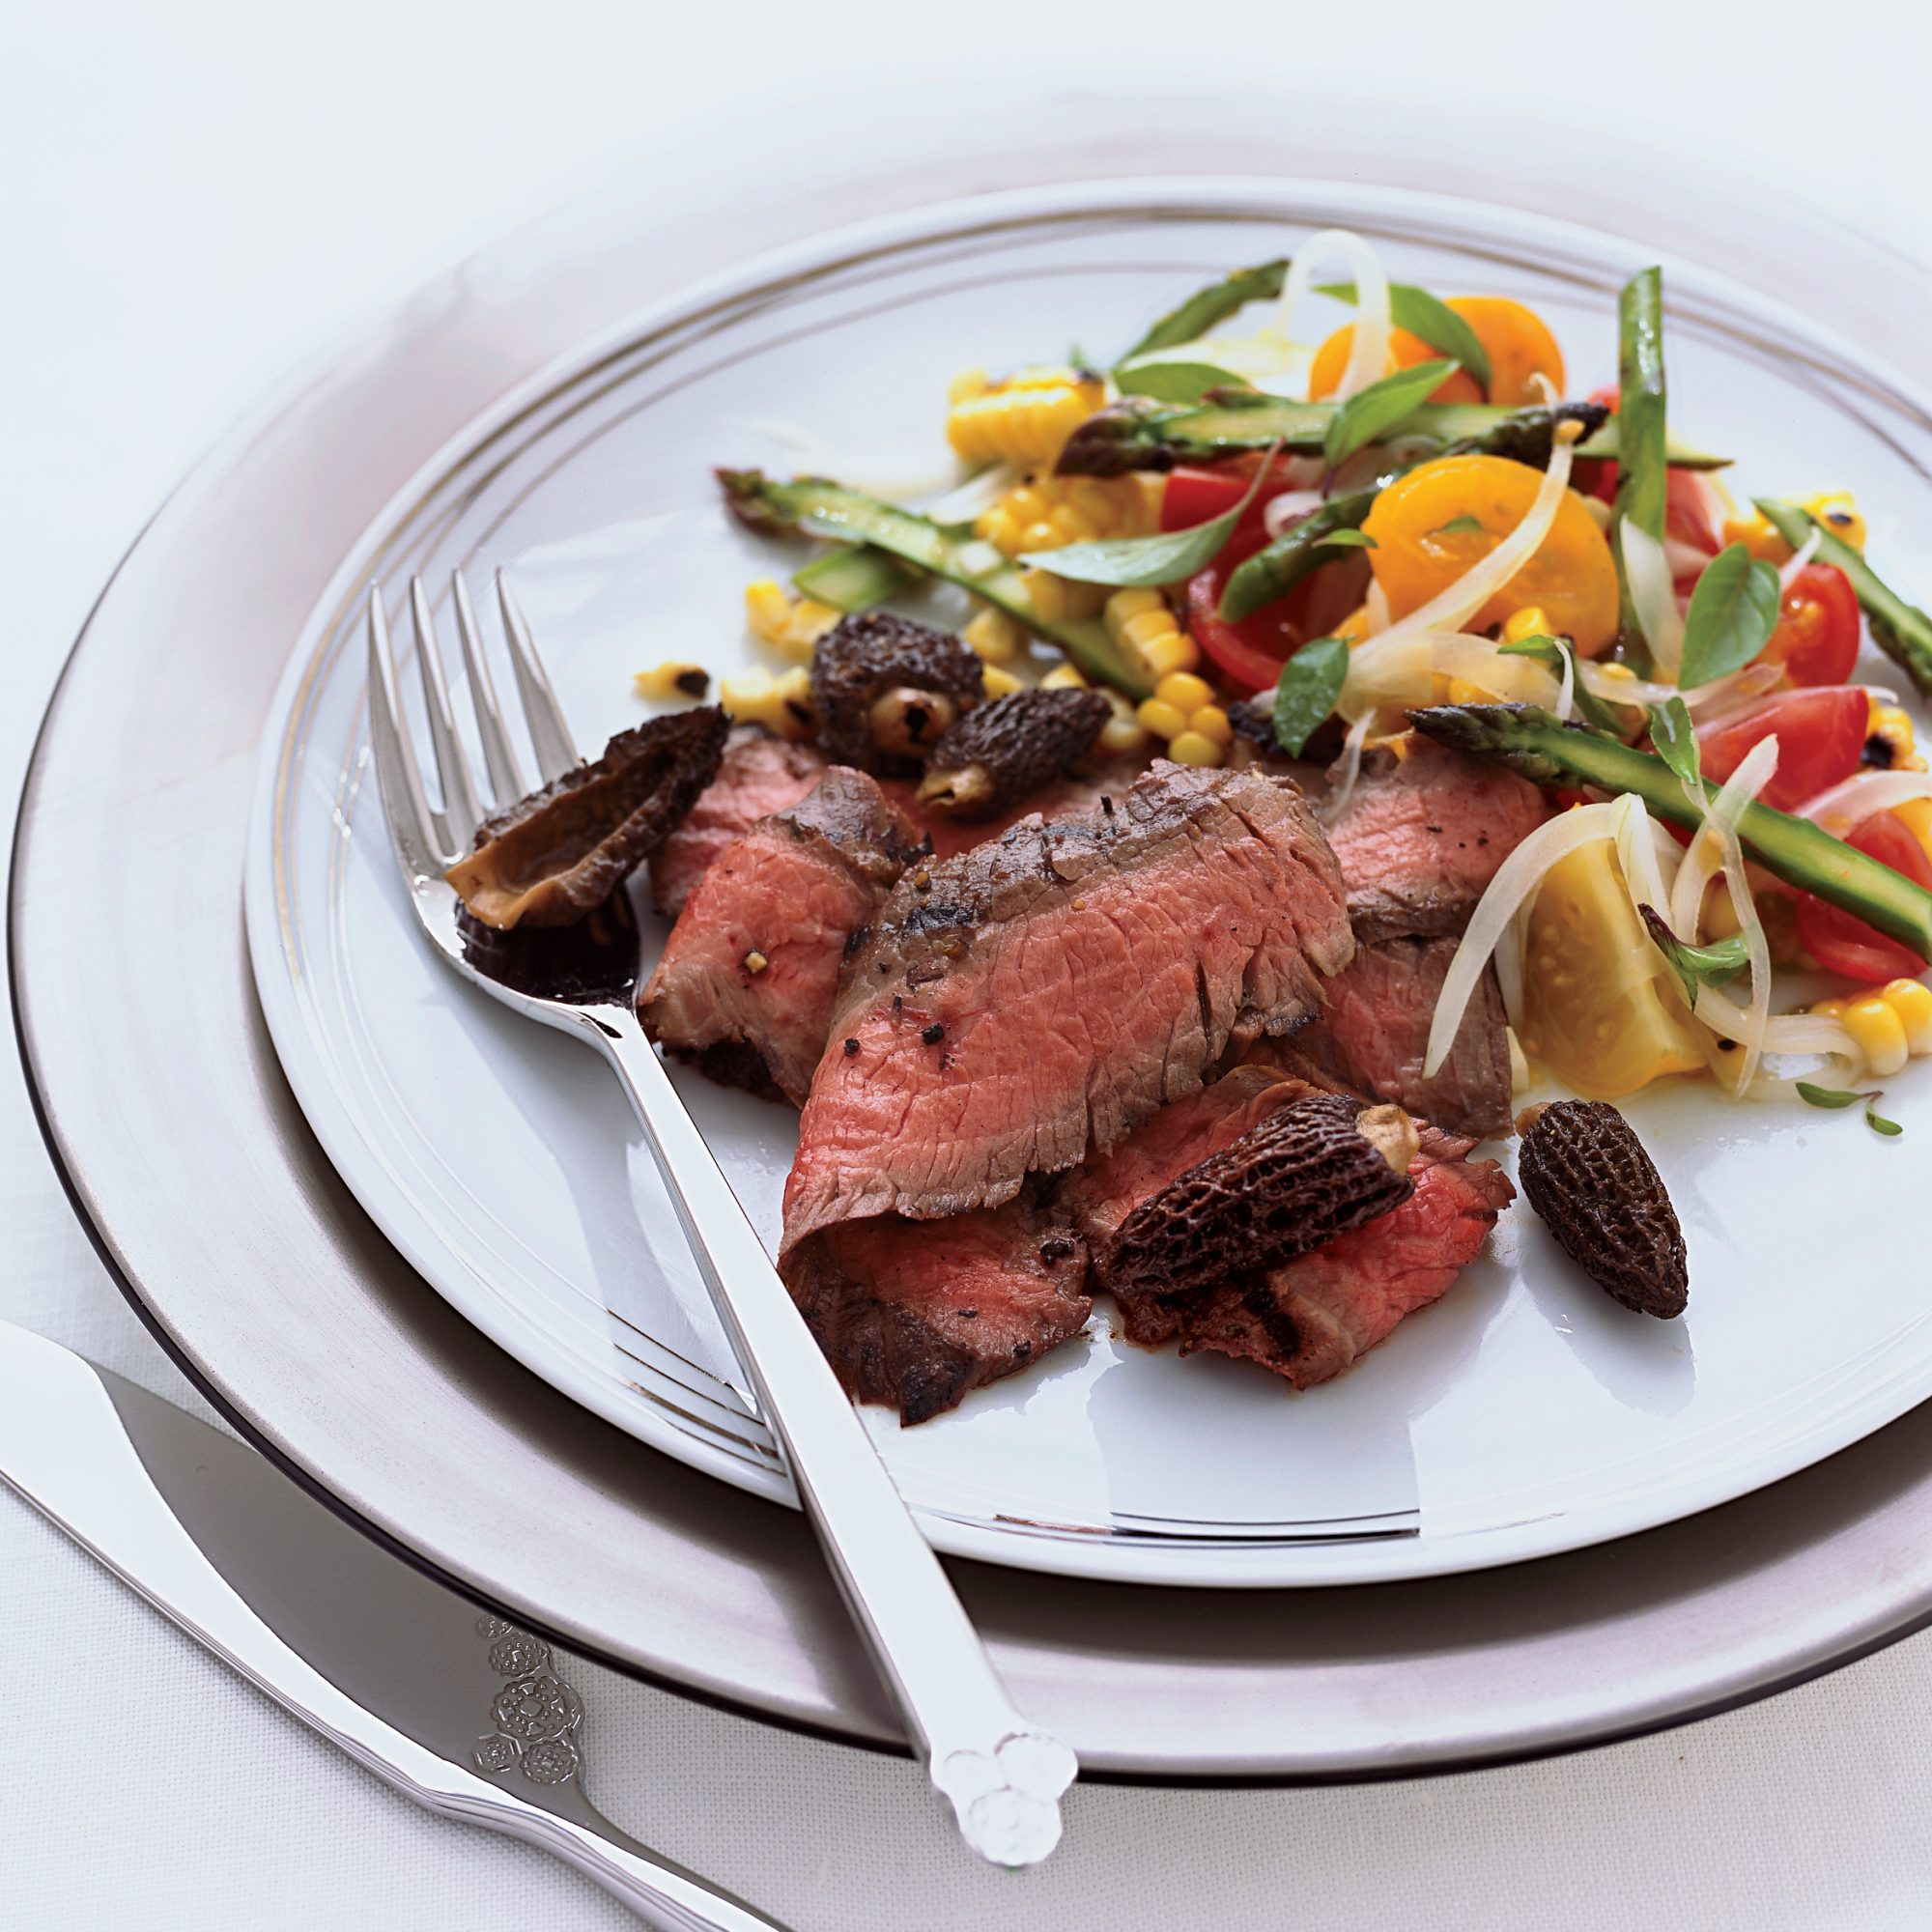 200907-r-flank-steak.jpg